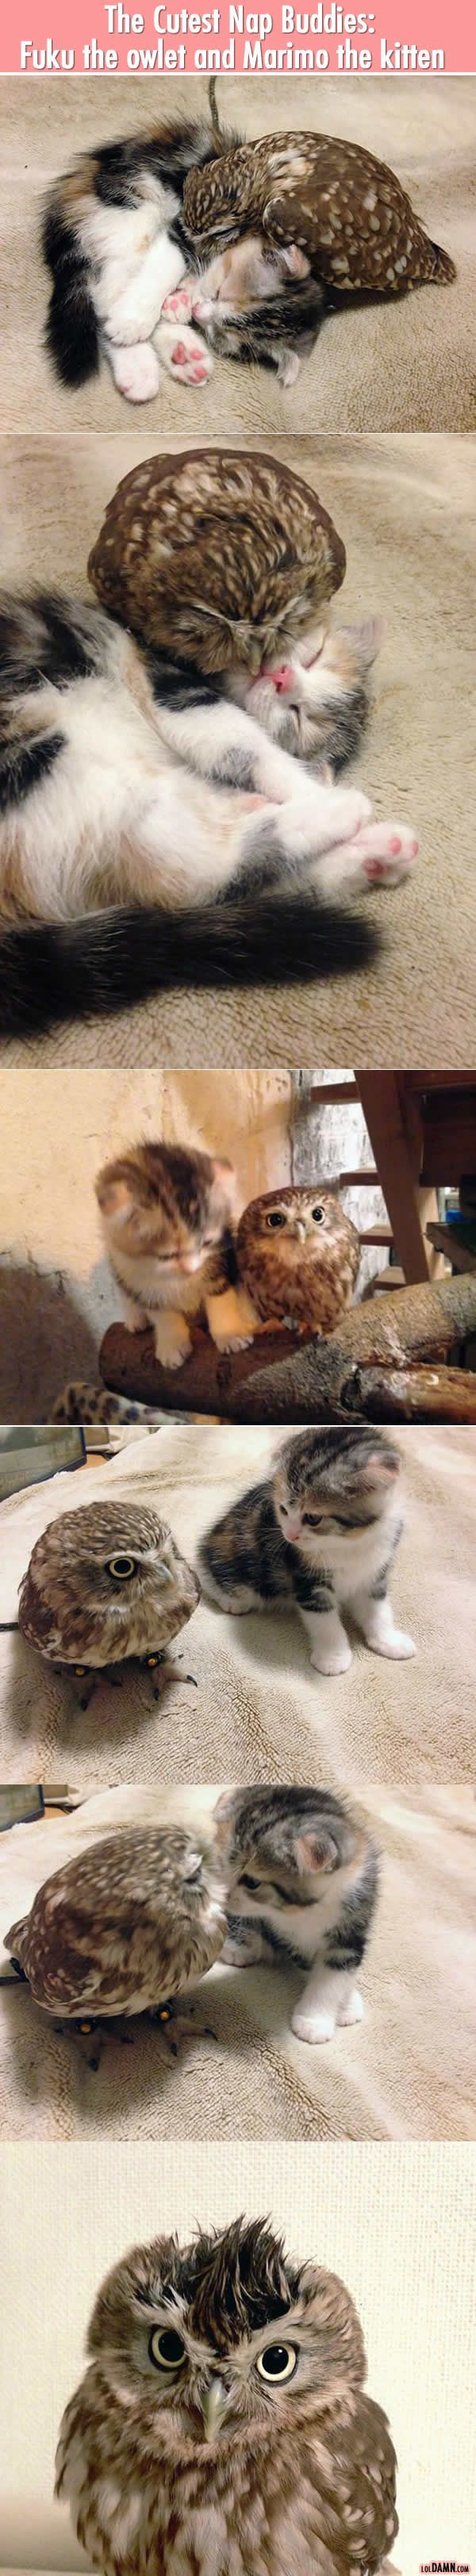 best animals images on pinterest fluffy pets adorable animals